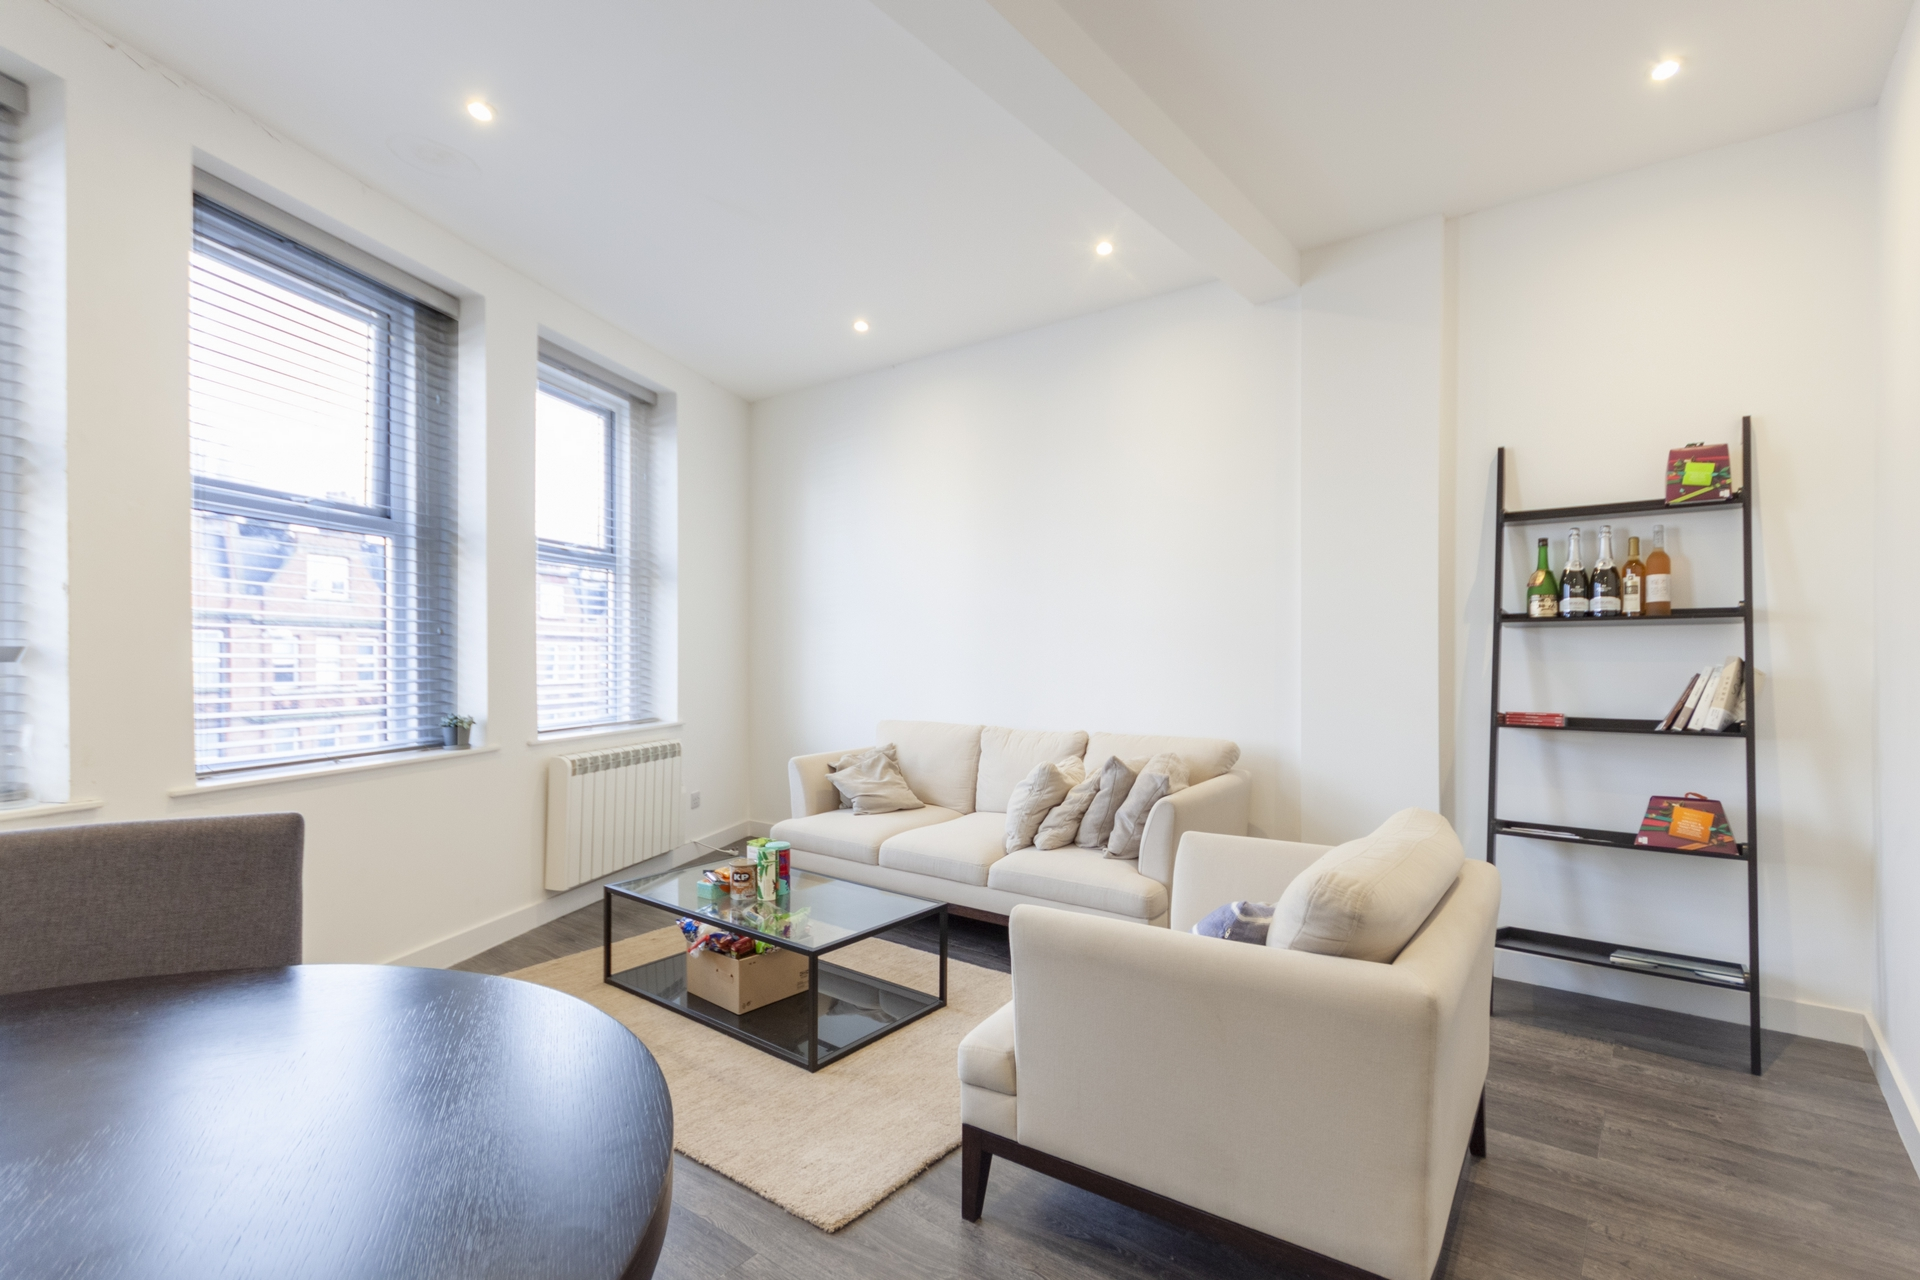 2 Bedroom Flat to rent in Hampstead, London, NW3